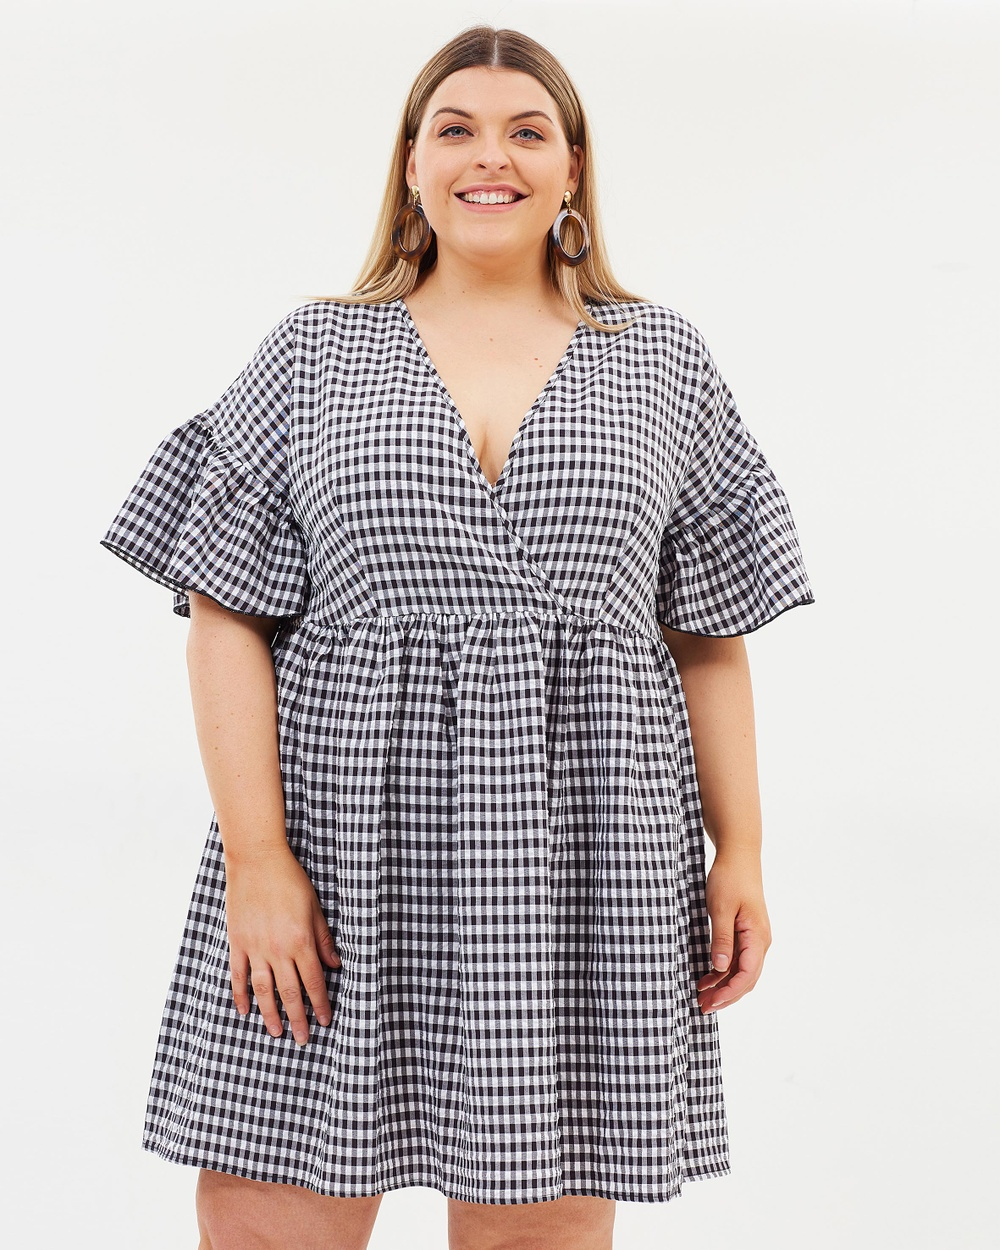 Atmos & Here Curvy ICONIC EXCLUSIVE Jessie Smock Dress Dresses Gingham ICONIC EXCLUSIVE Jessie Smock Dress